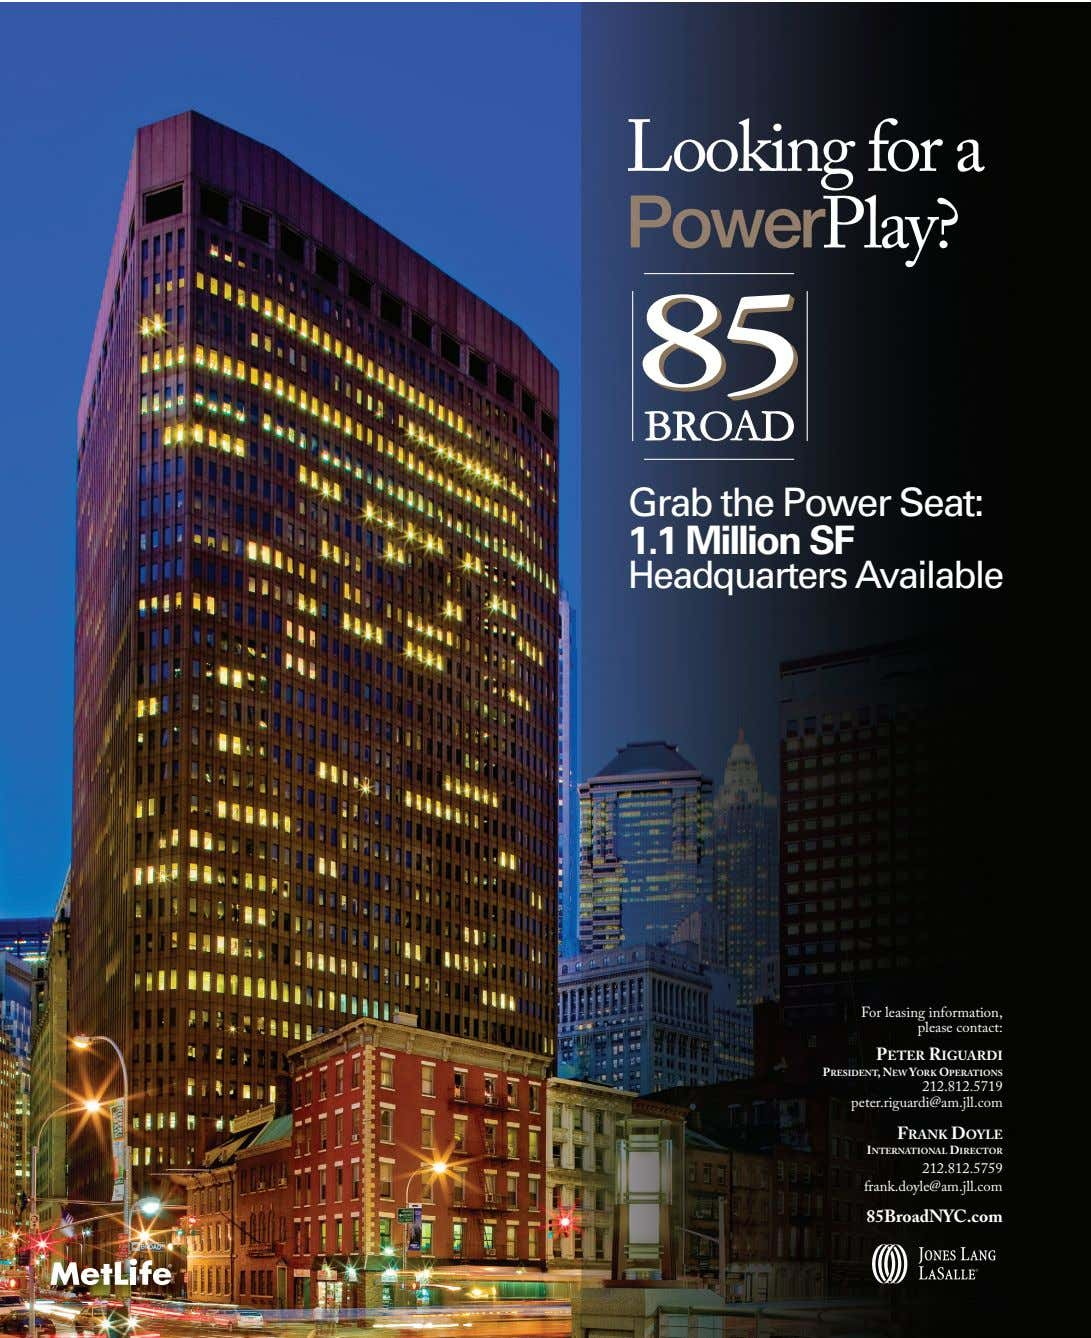 Looking for a PowerPlay? Grab the Power Seat: 1.1 Million SF Headquarters Available For leasing